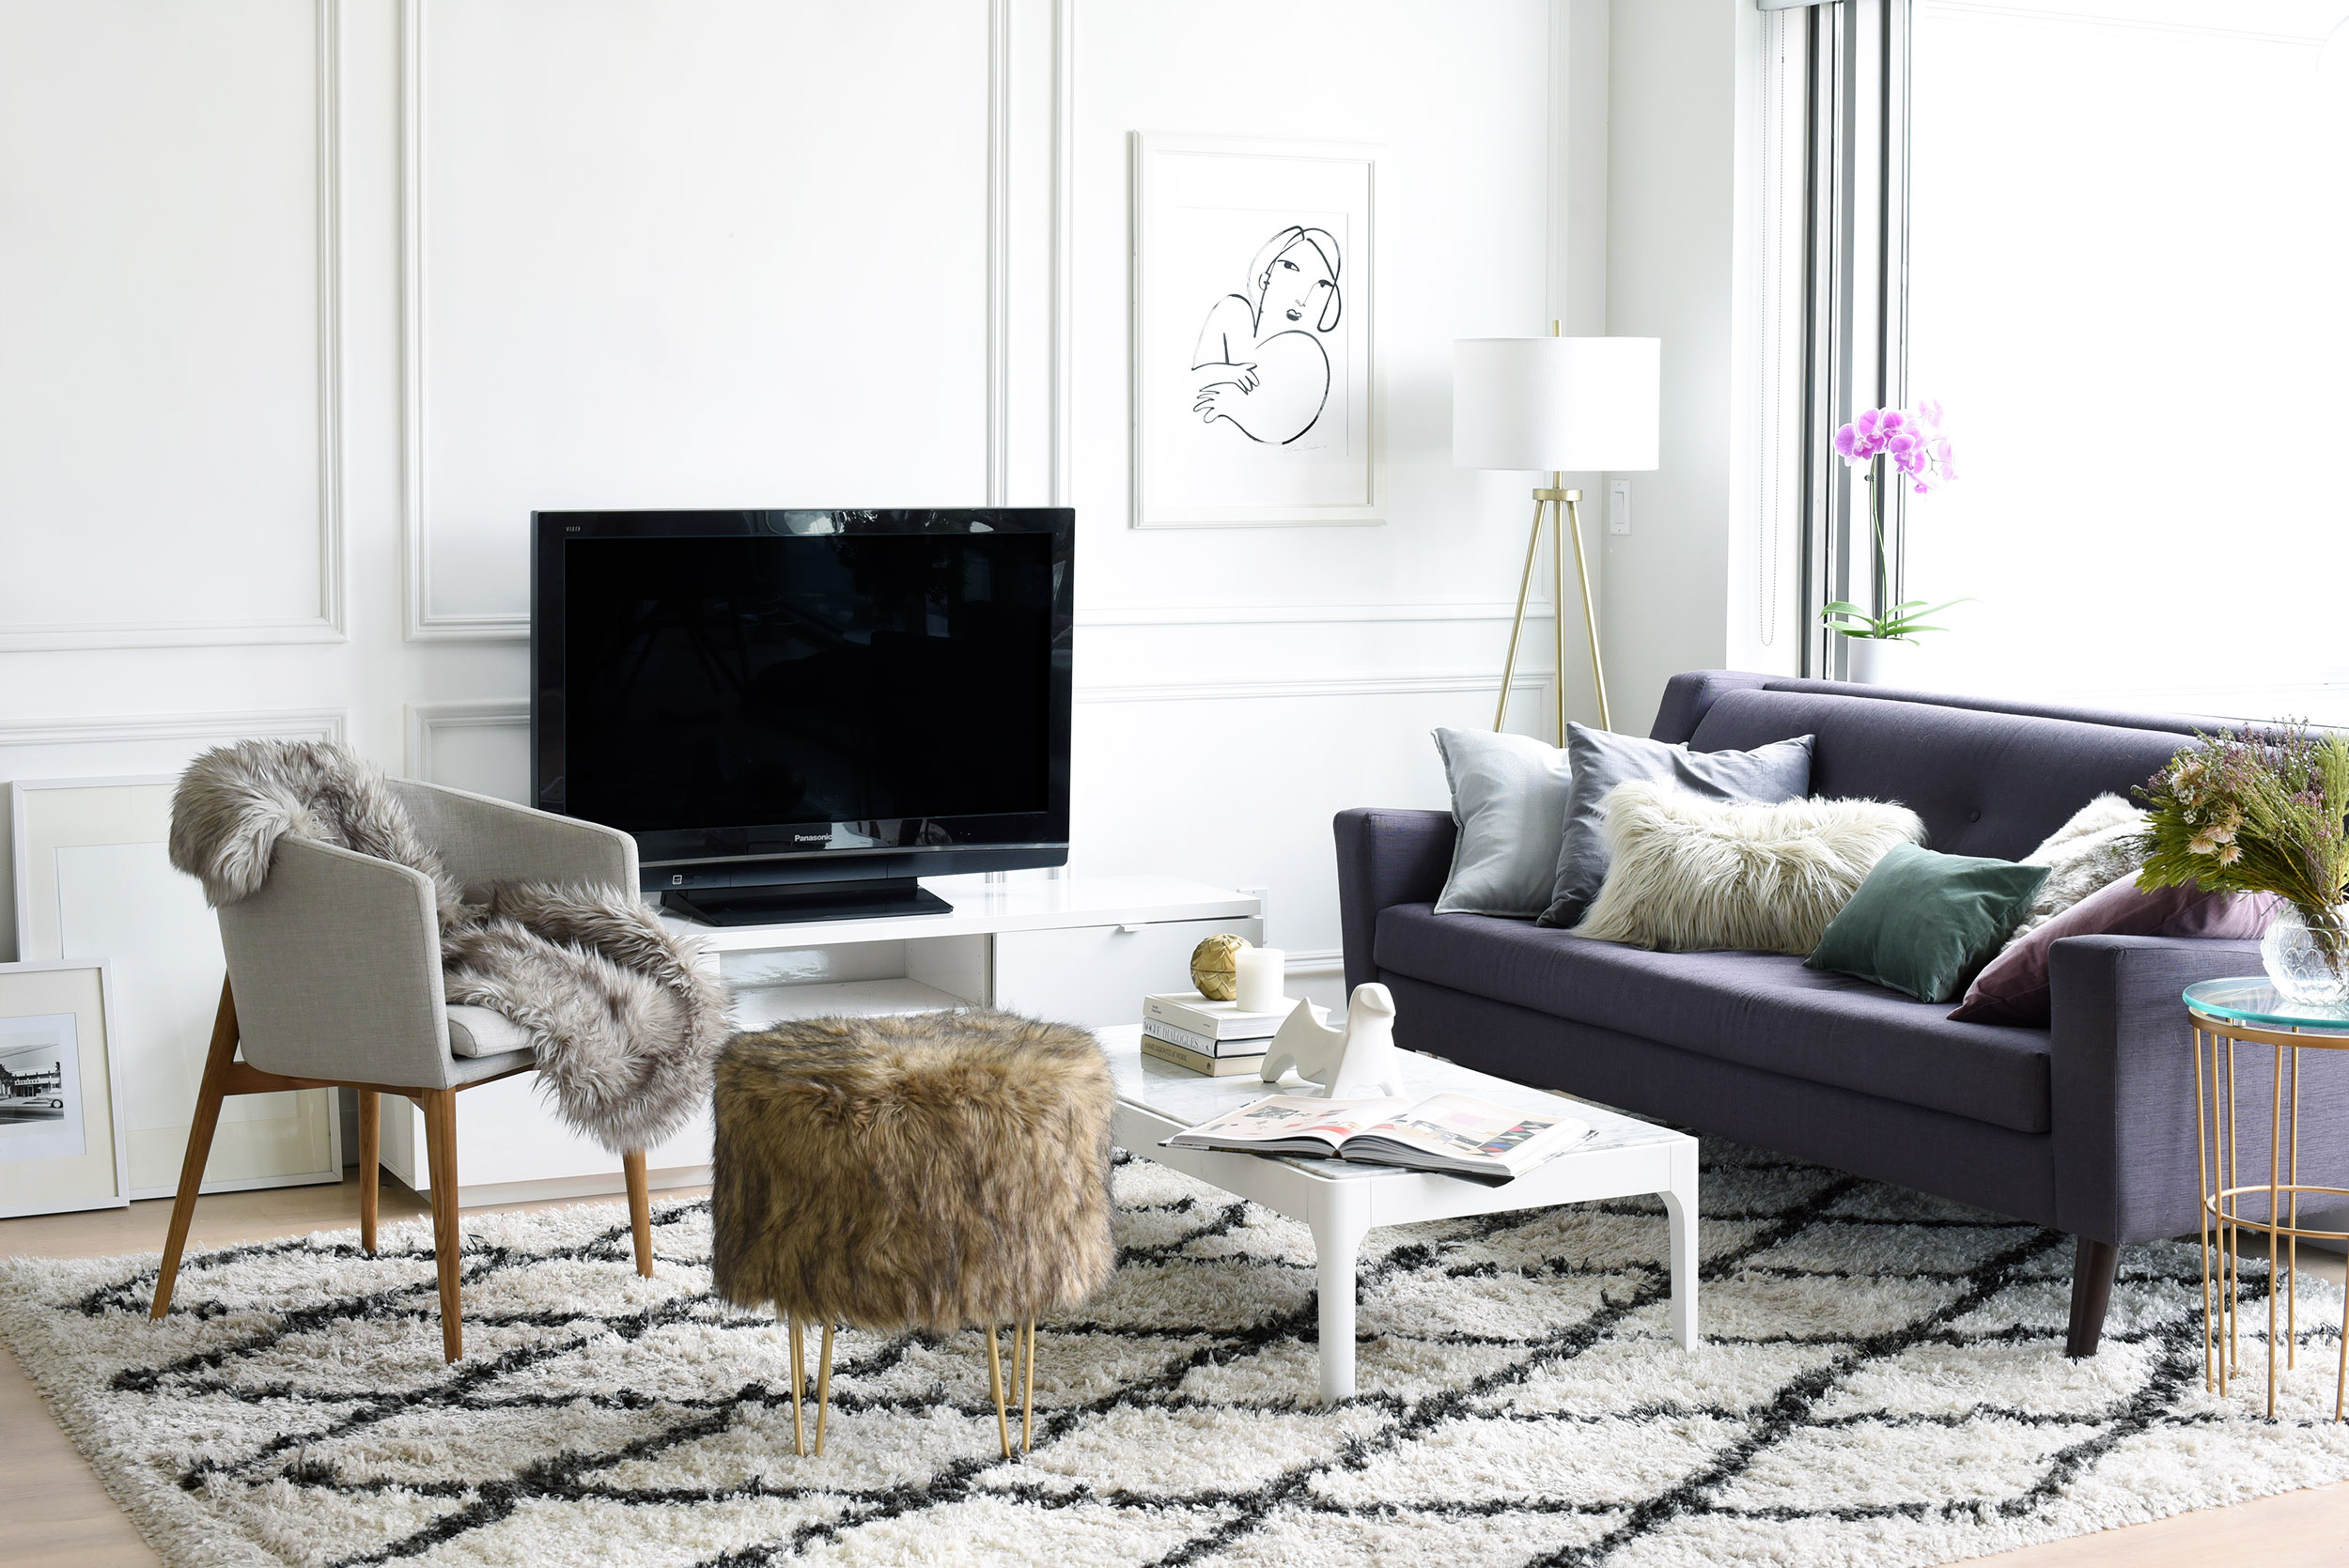 Small Spaces: How I Styled our Living Room